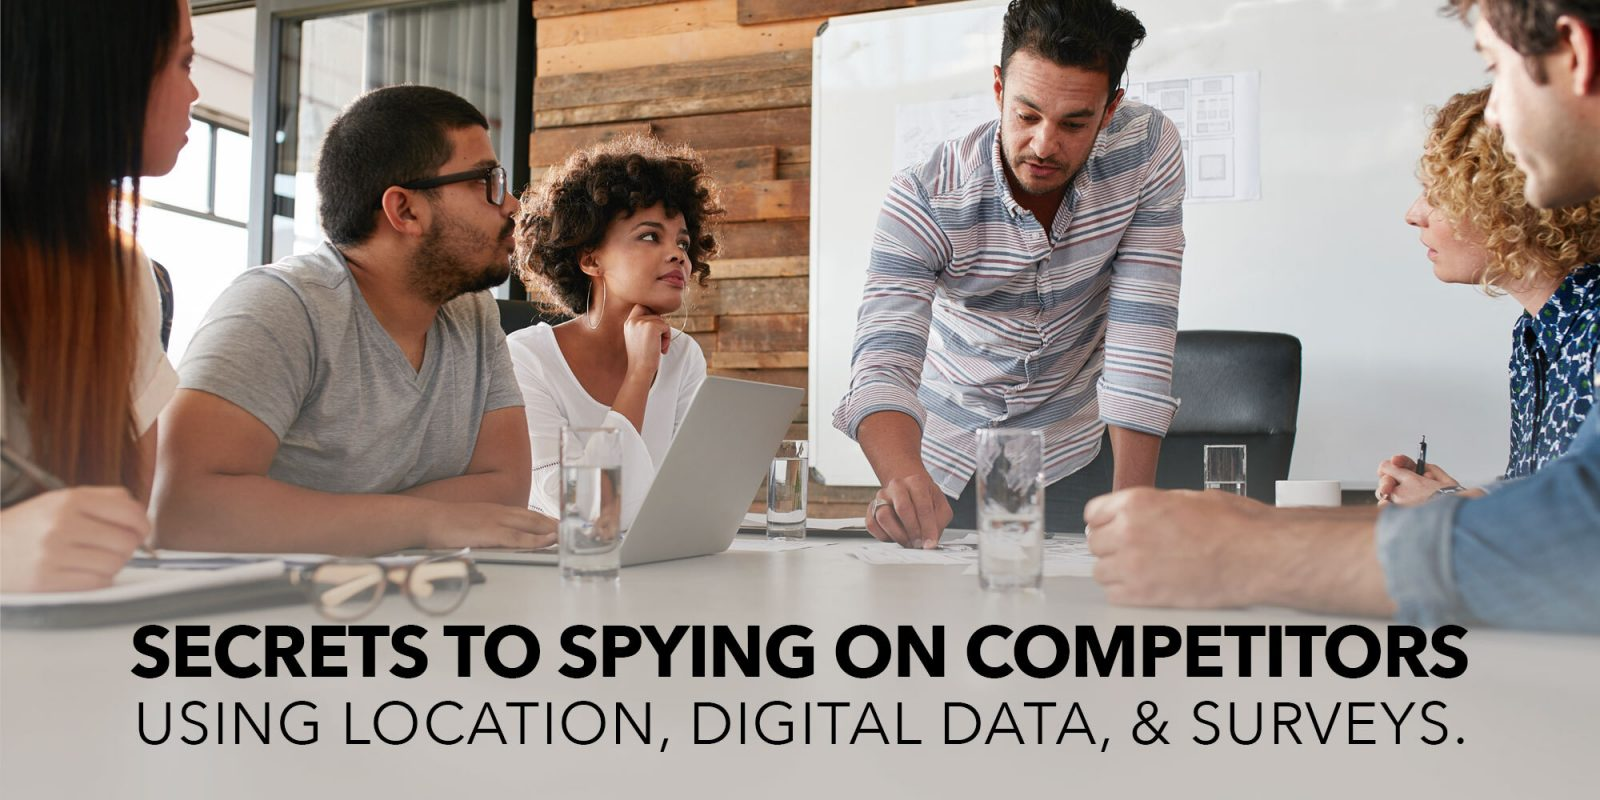 Secrets to spying on your competitors.